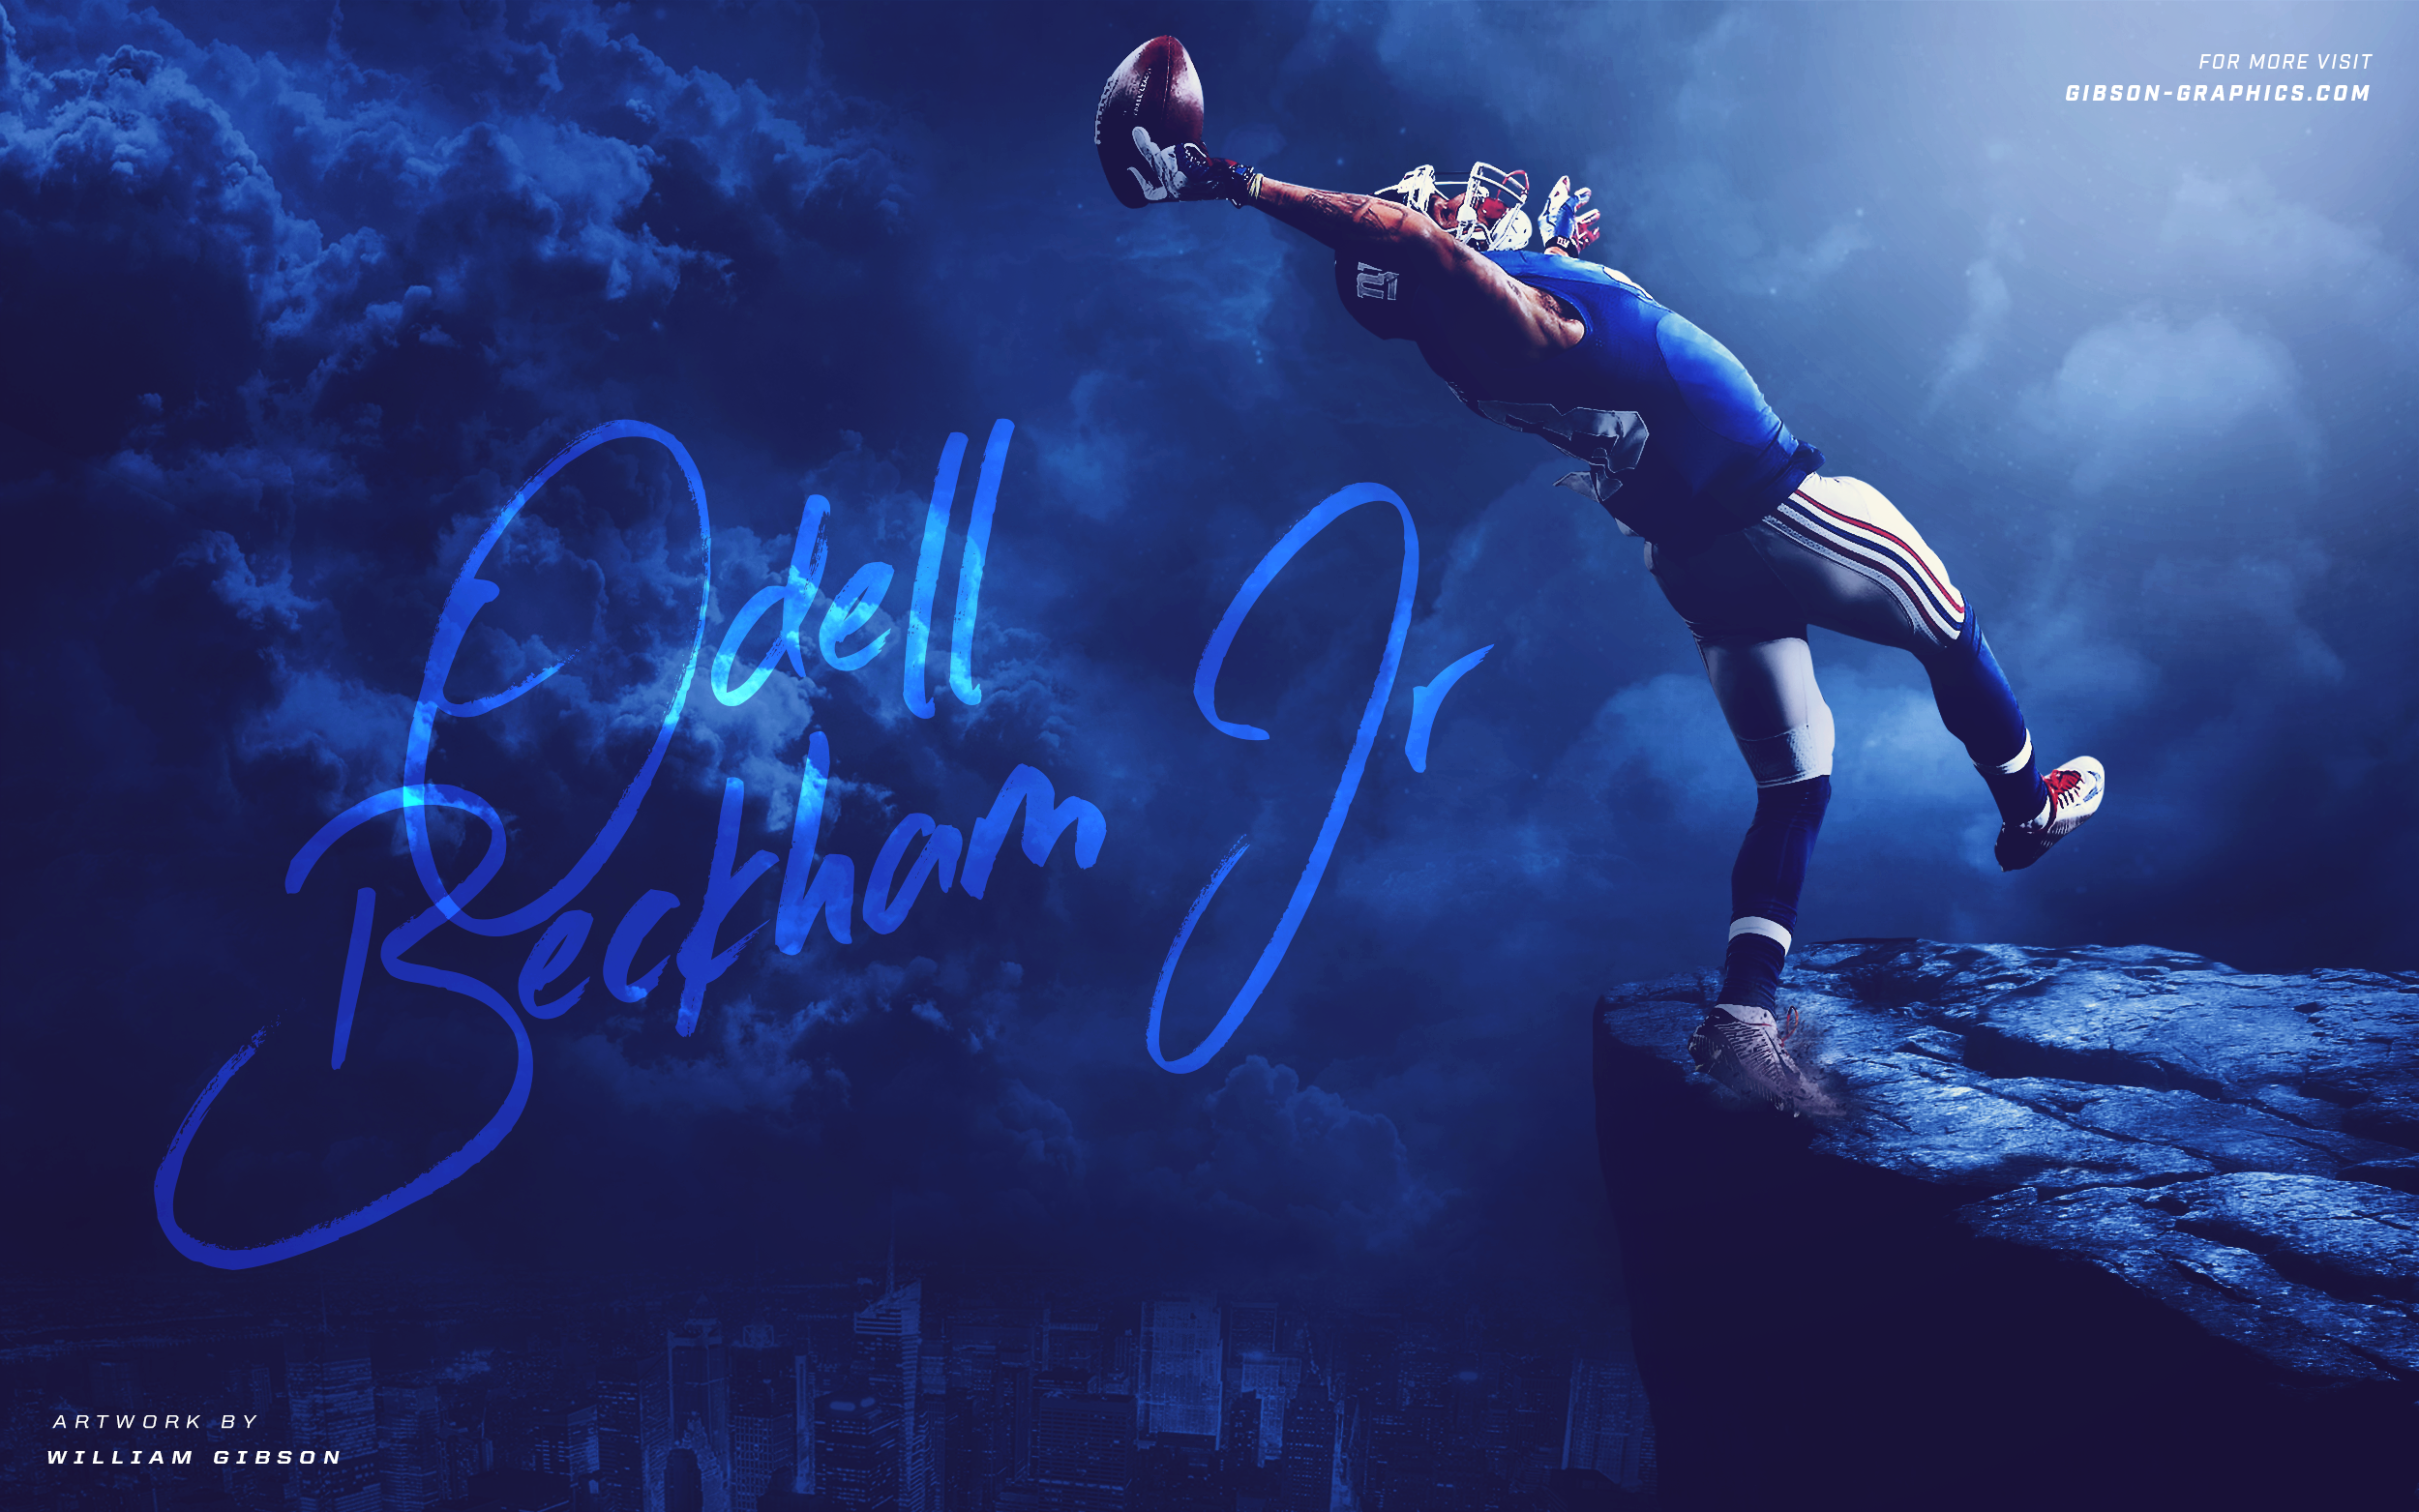 Odell Beckham Jr Artwork